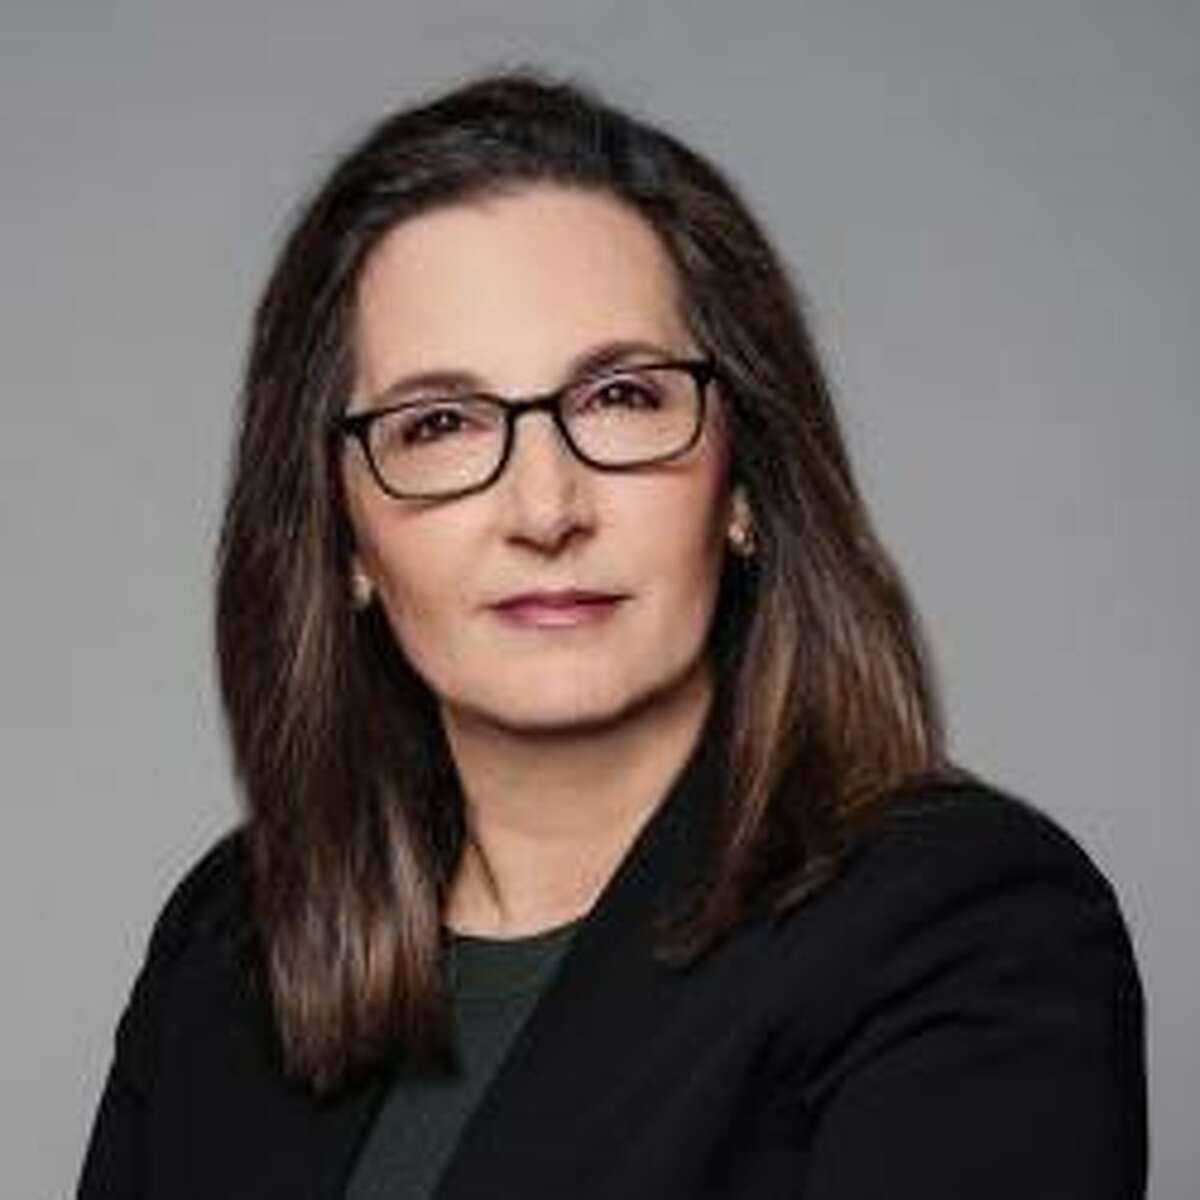 Joyce Vance, one of the first five U.S. Attorneys - and the first female U.S. Attorney - nominated by President Barack Obama, will lead a